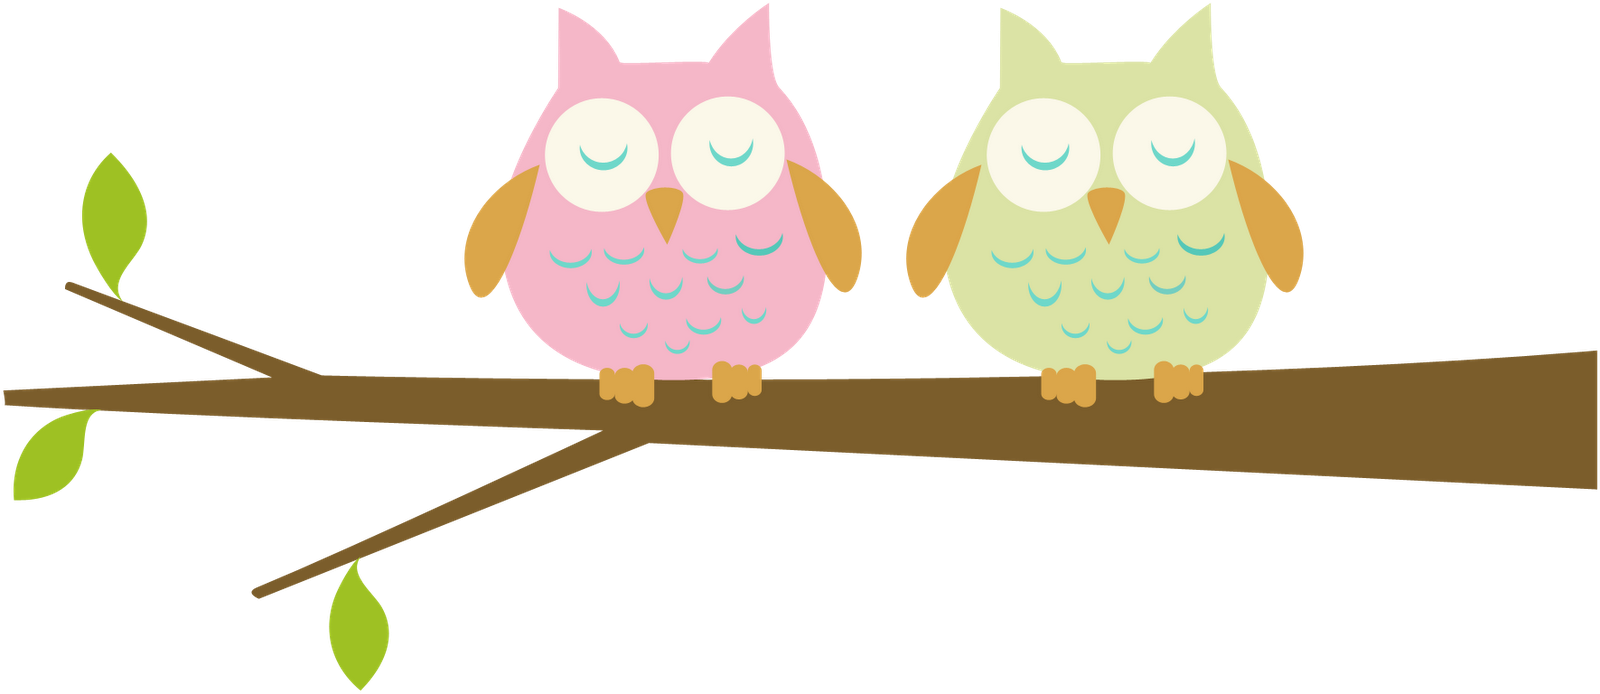 Clip Art Clipart Owls sleepy owls clipart kid 16 baby owl clip art free cliparts that you can download to you